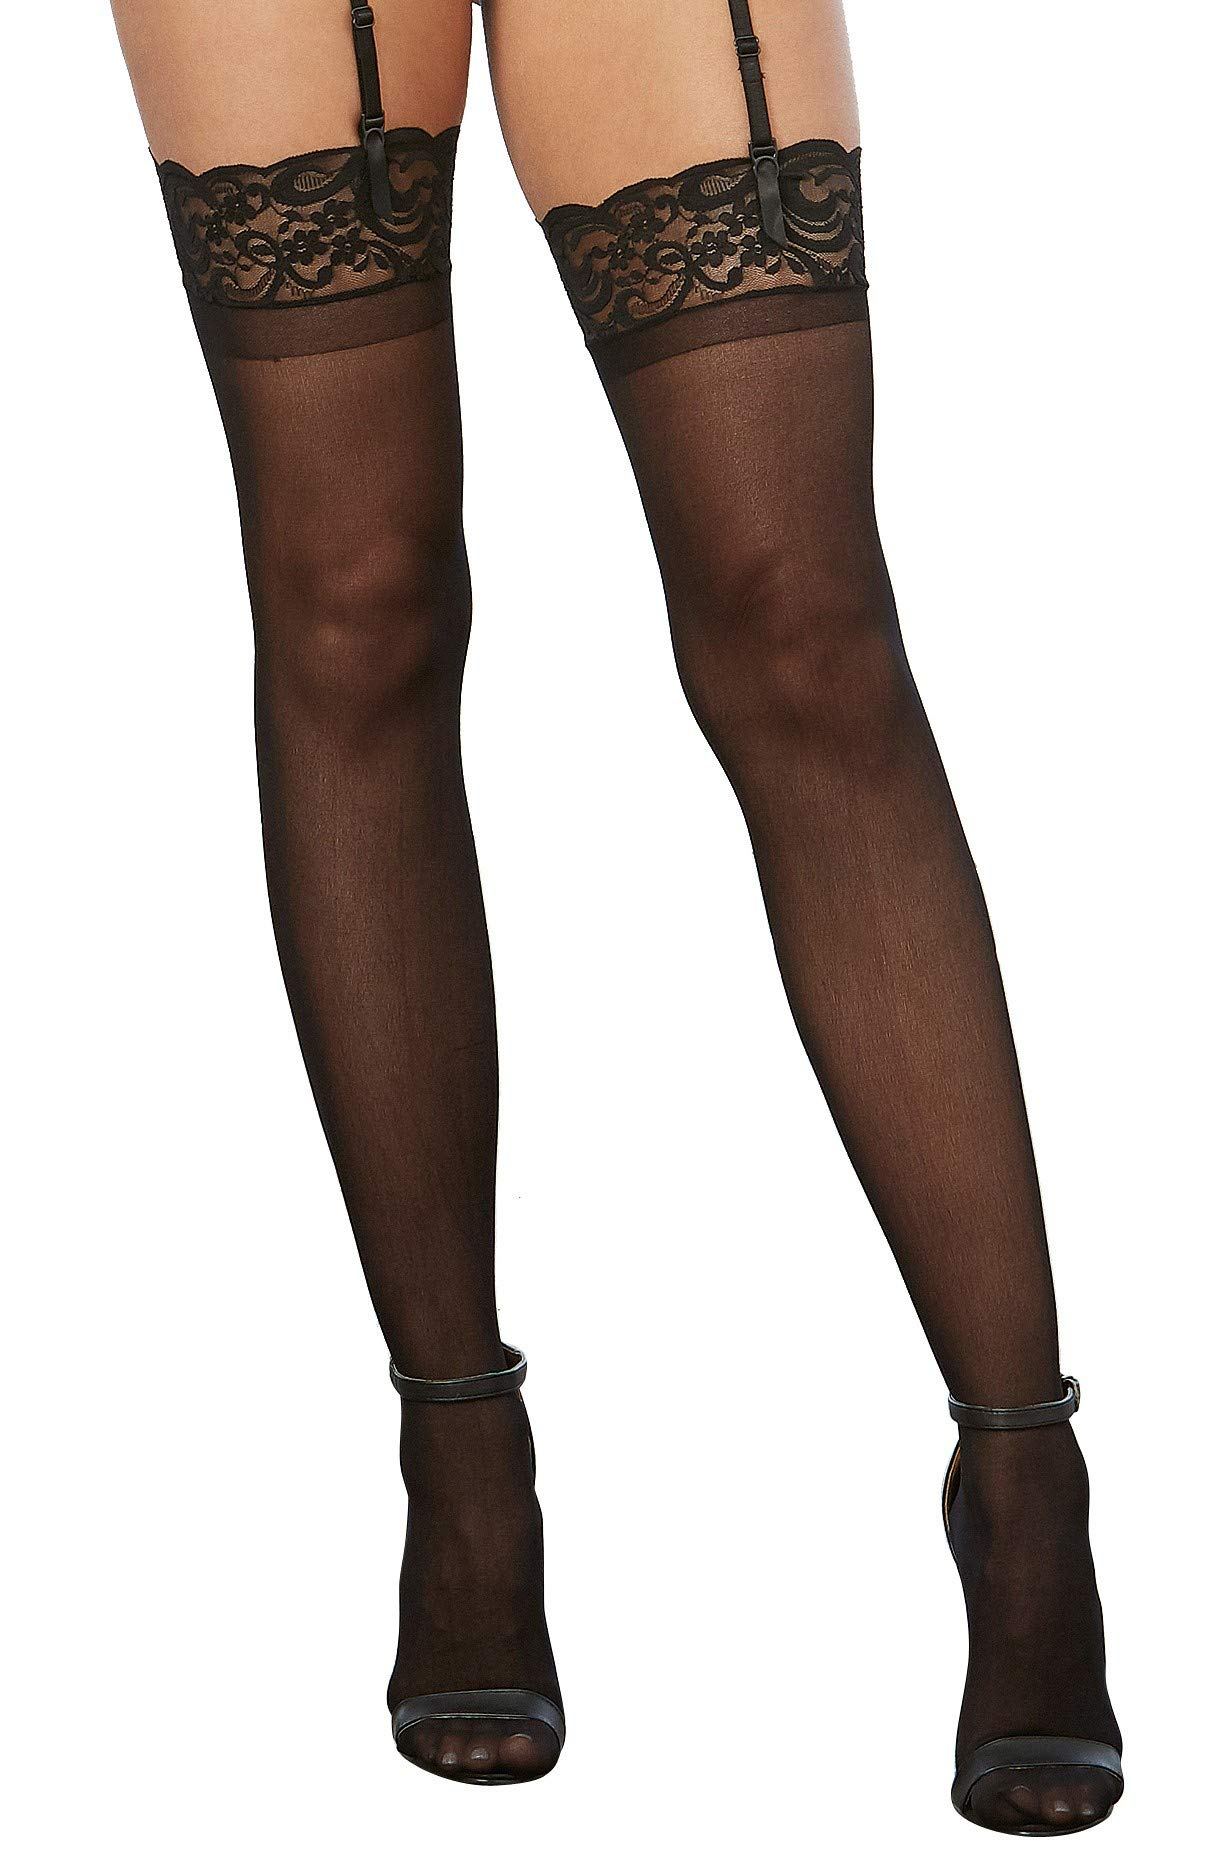 Dreamgirl Women's Lace Top Sheer Thigh-High Stockings